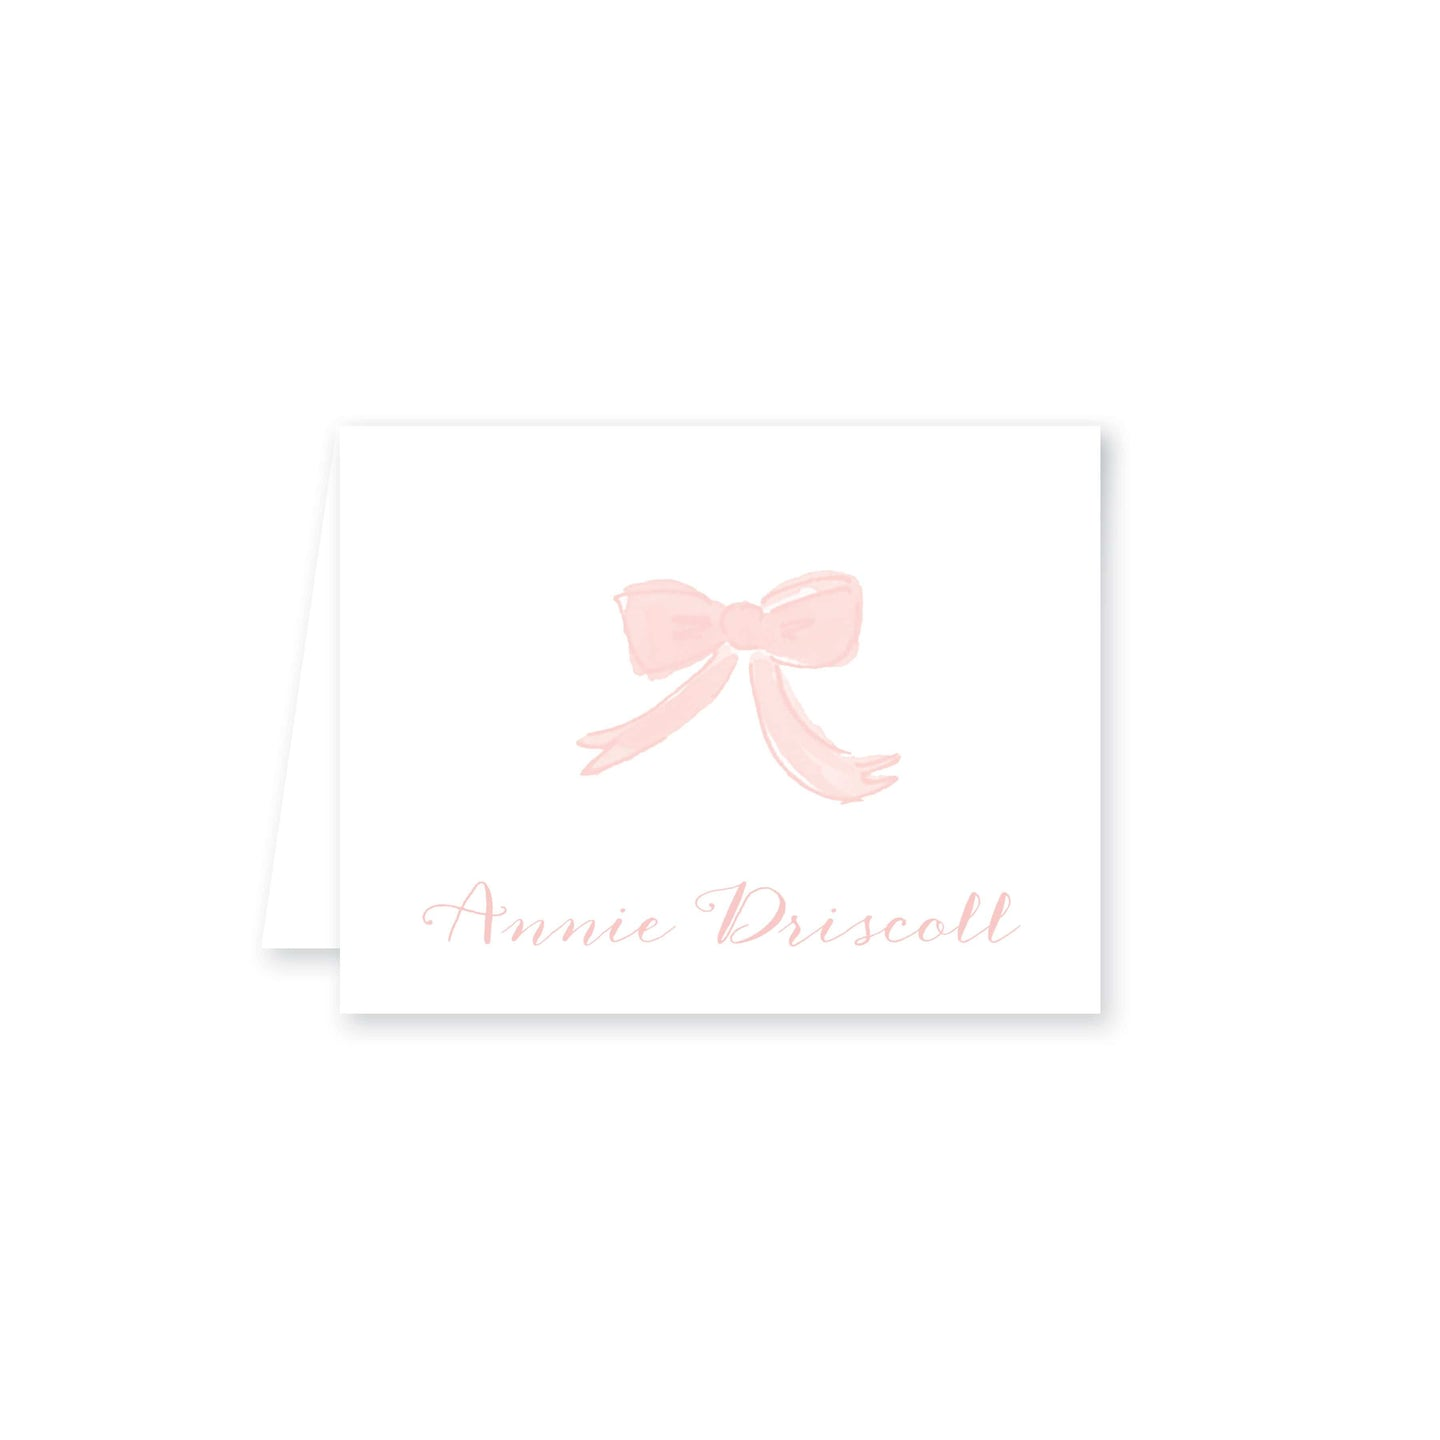 Weezie B. Designs | Watercolor Bow Personalized Folded Note Card